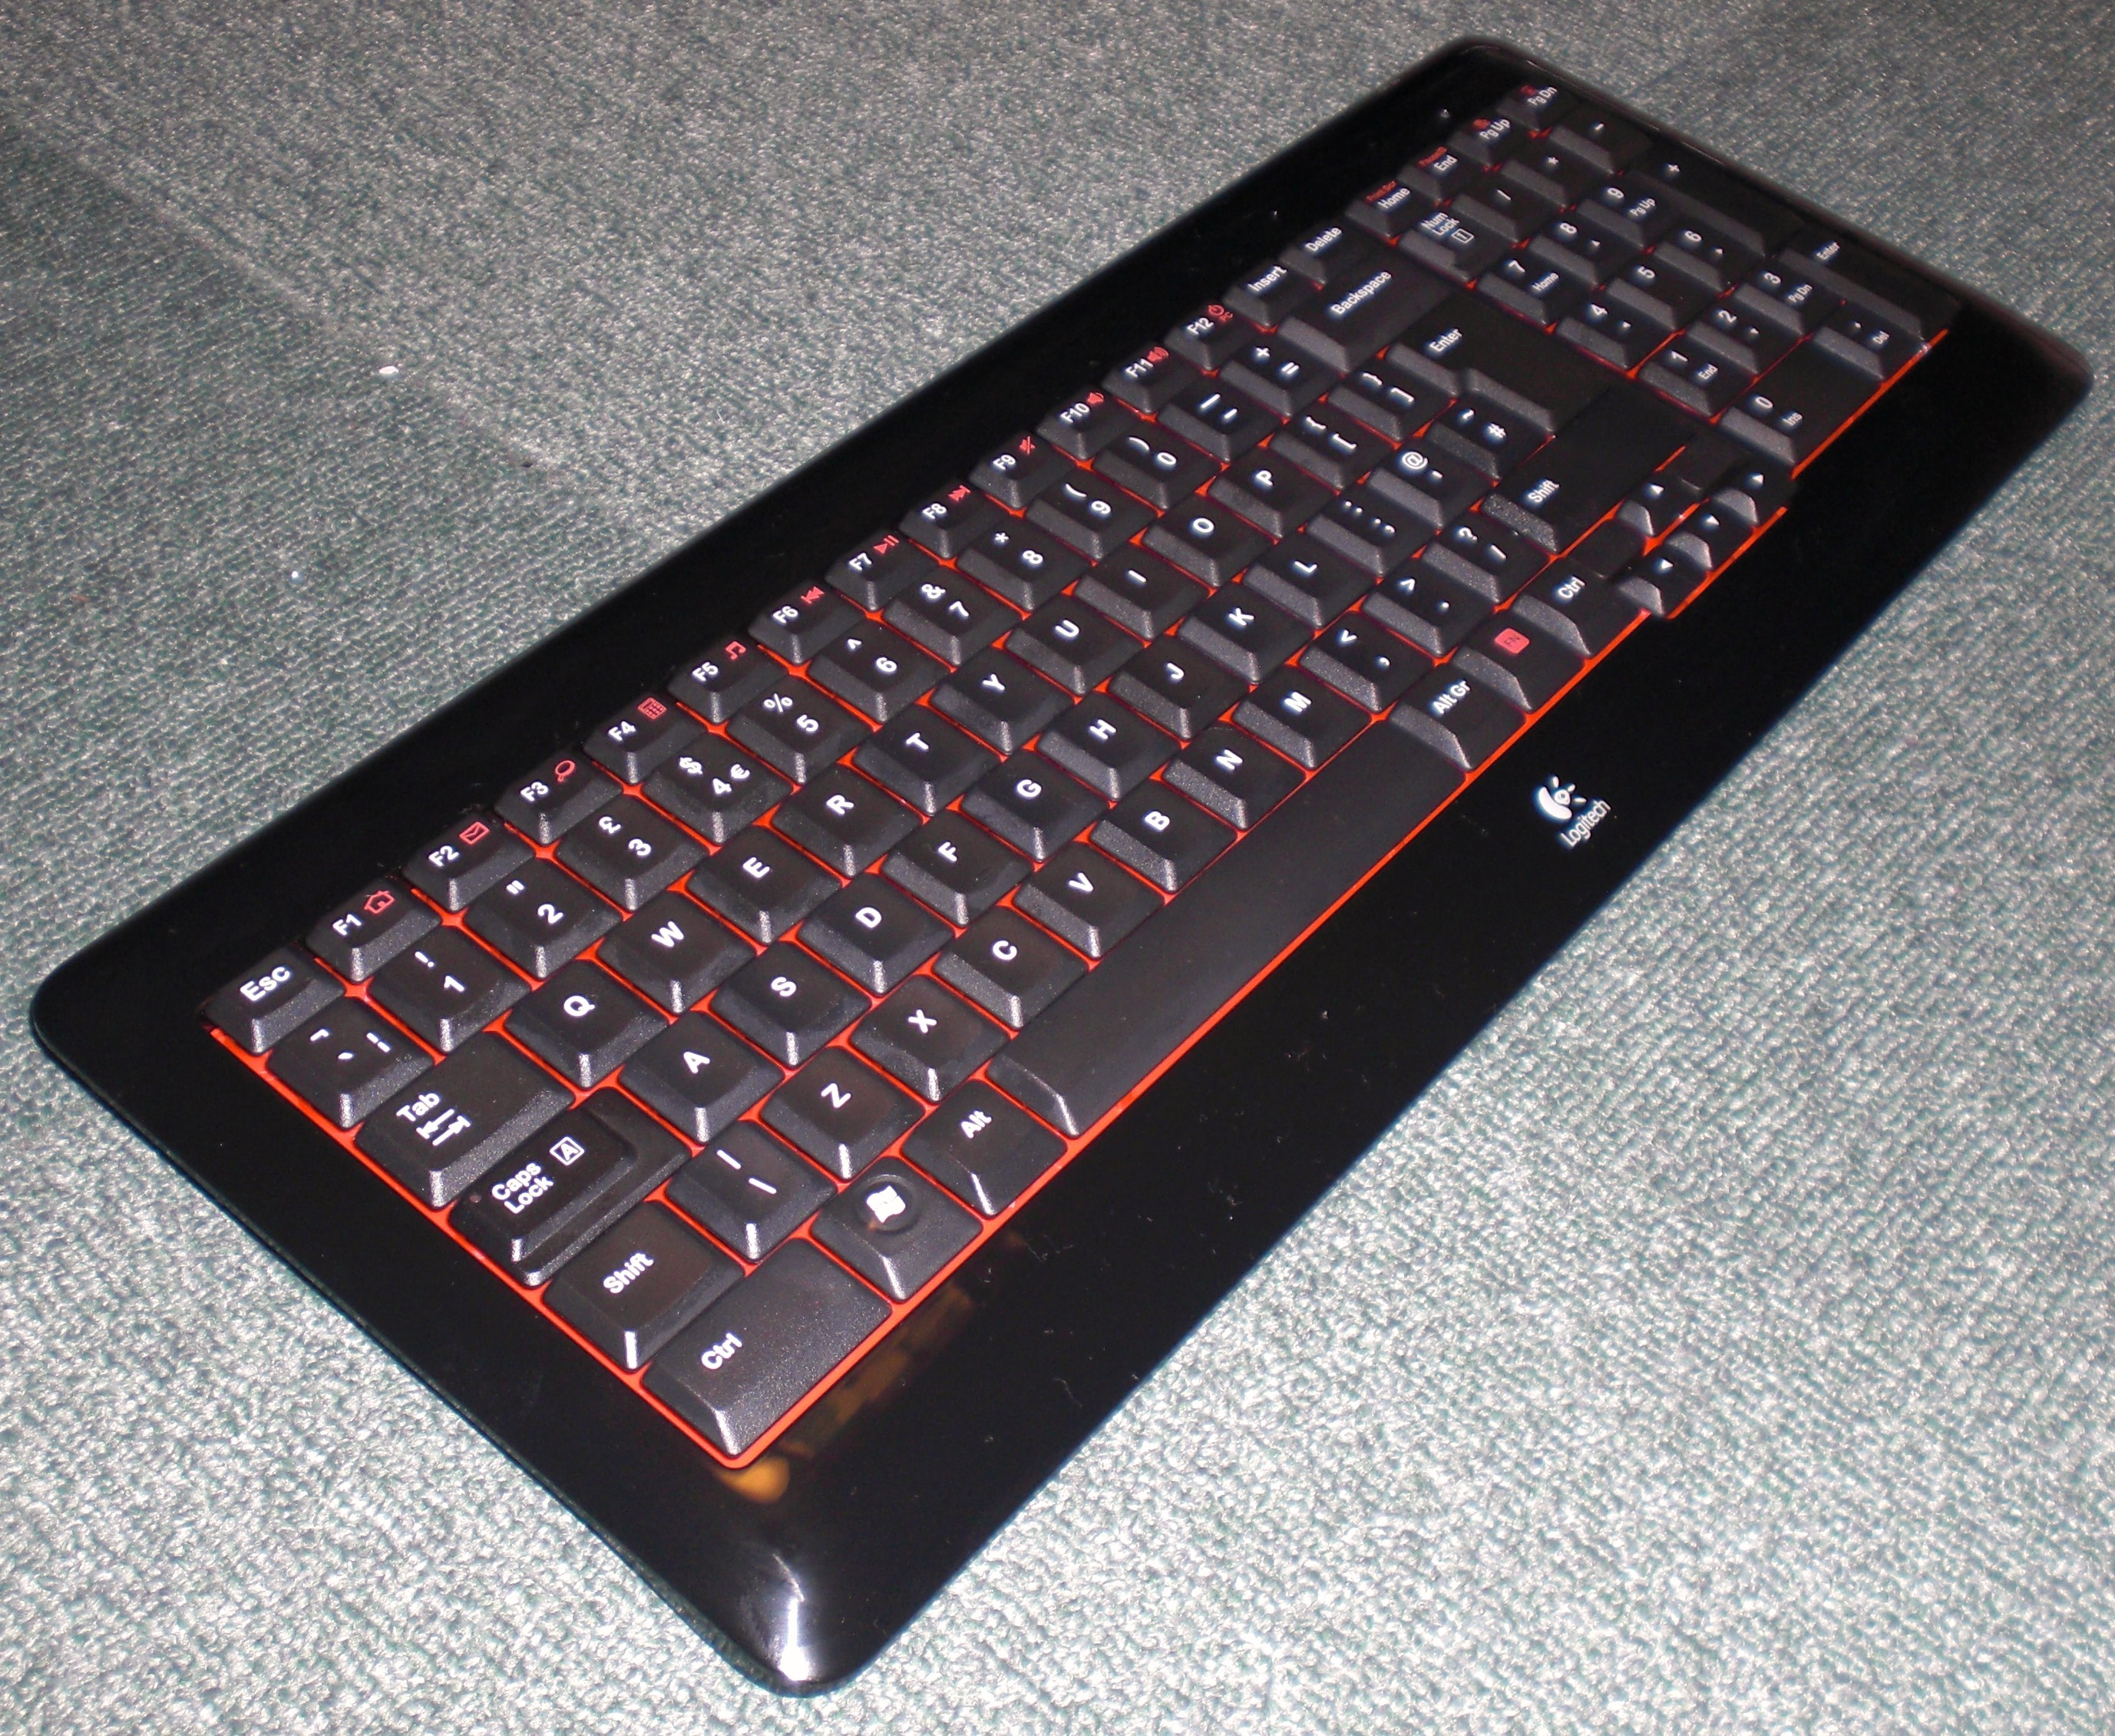 logitech k340 wireless keyboard review purplezest 39 s blog. Black Bedroom Furniture Sets. Home Design Ideas